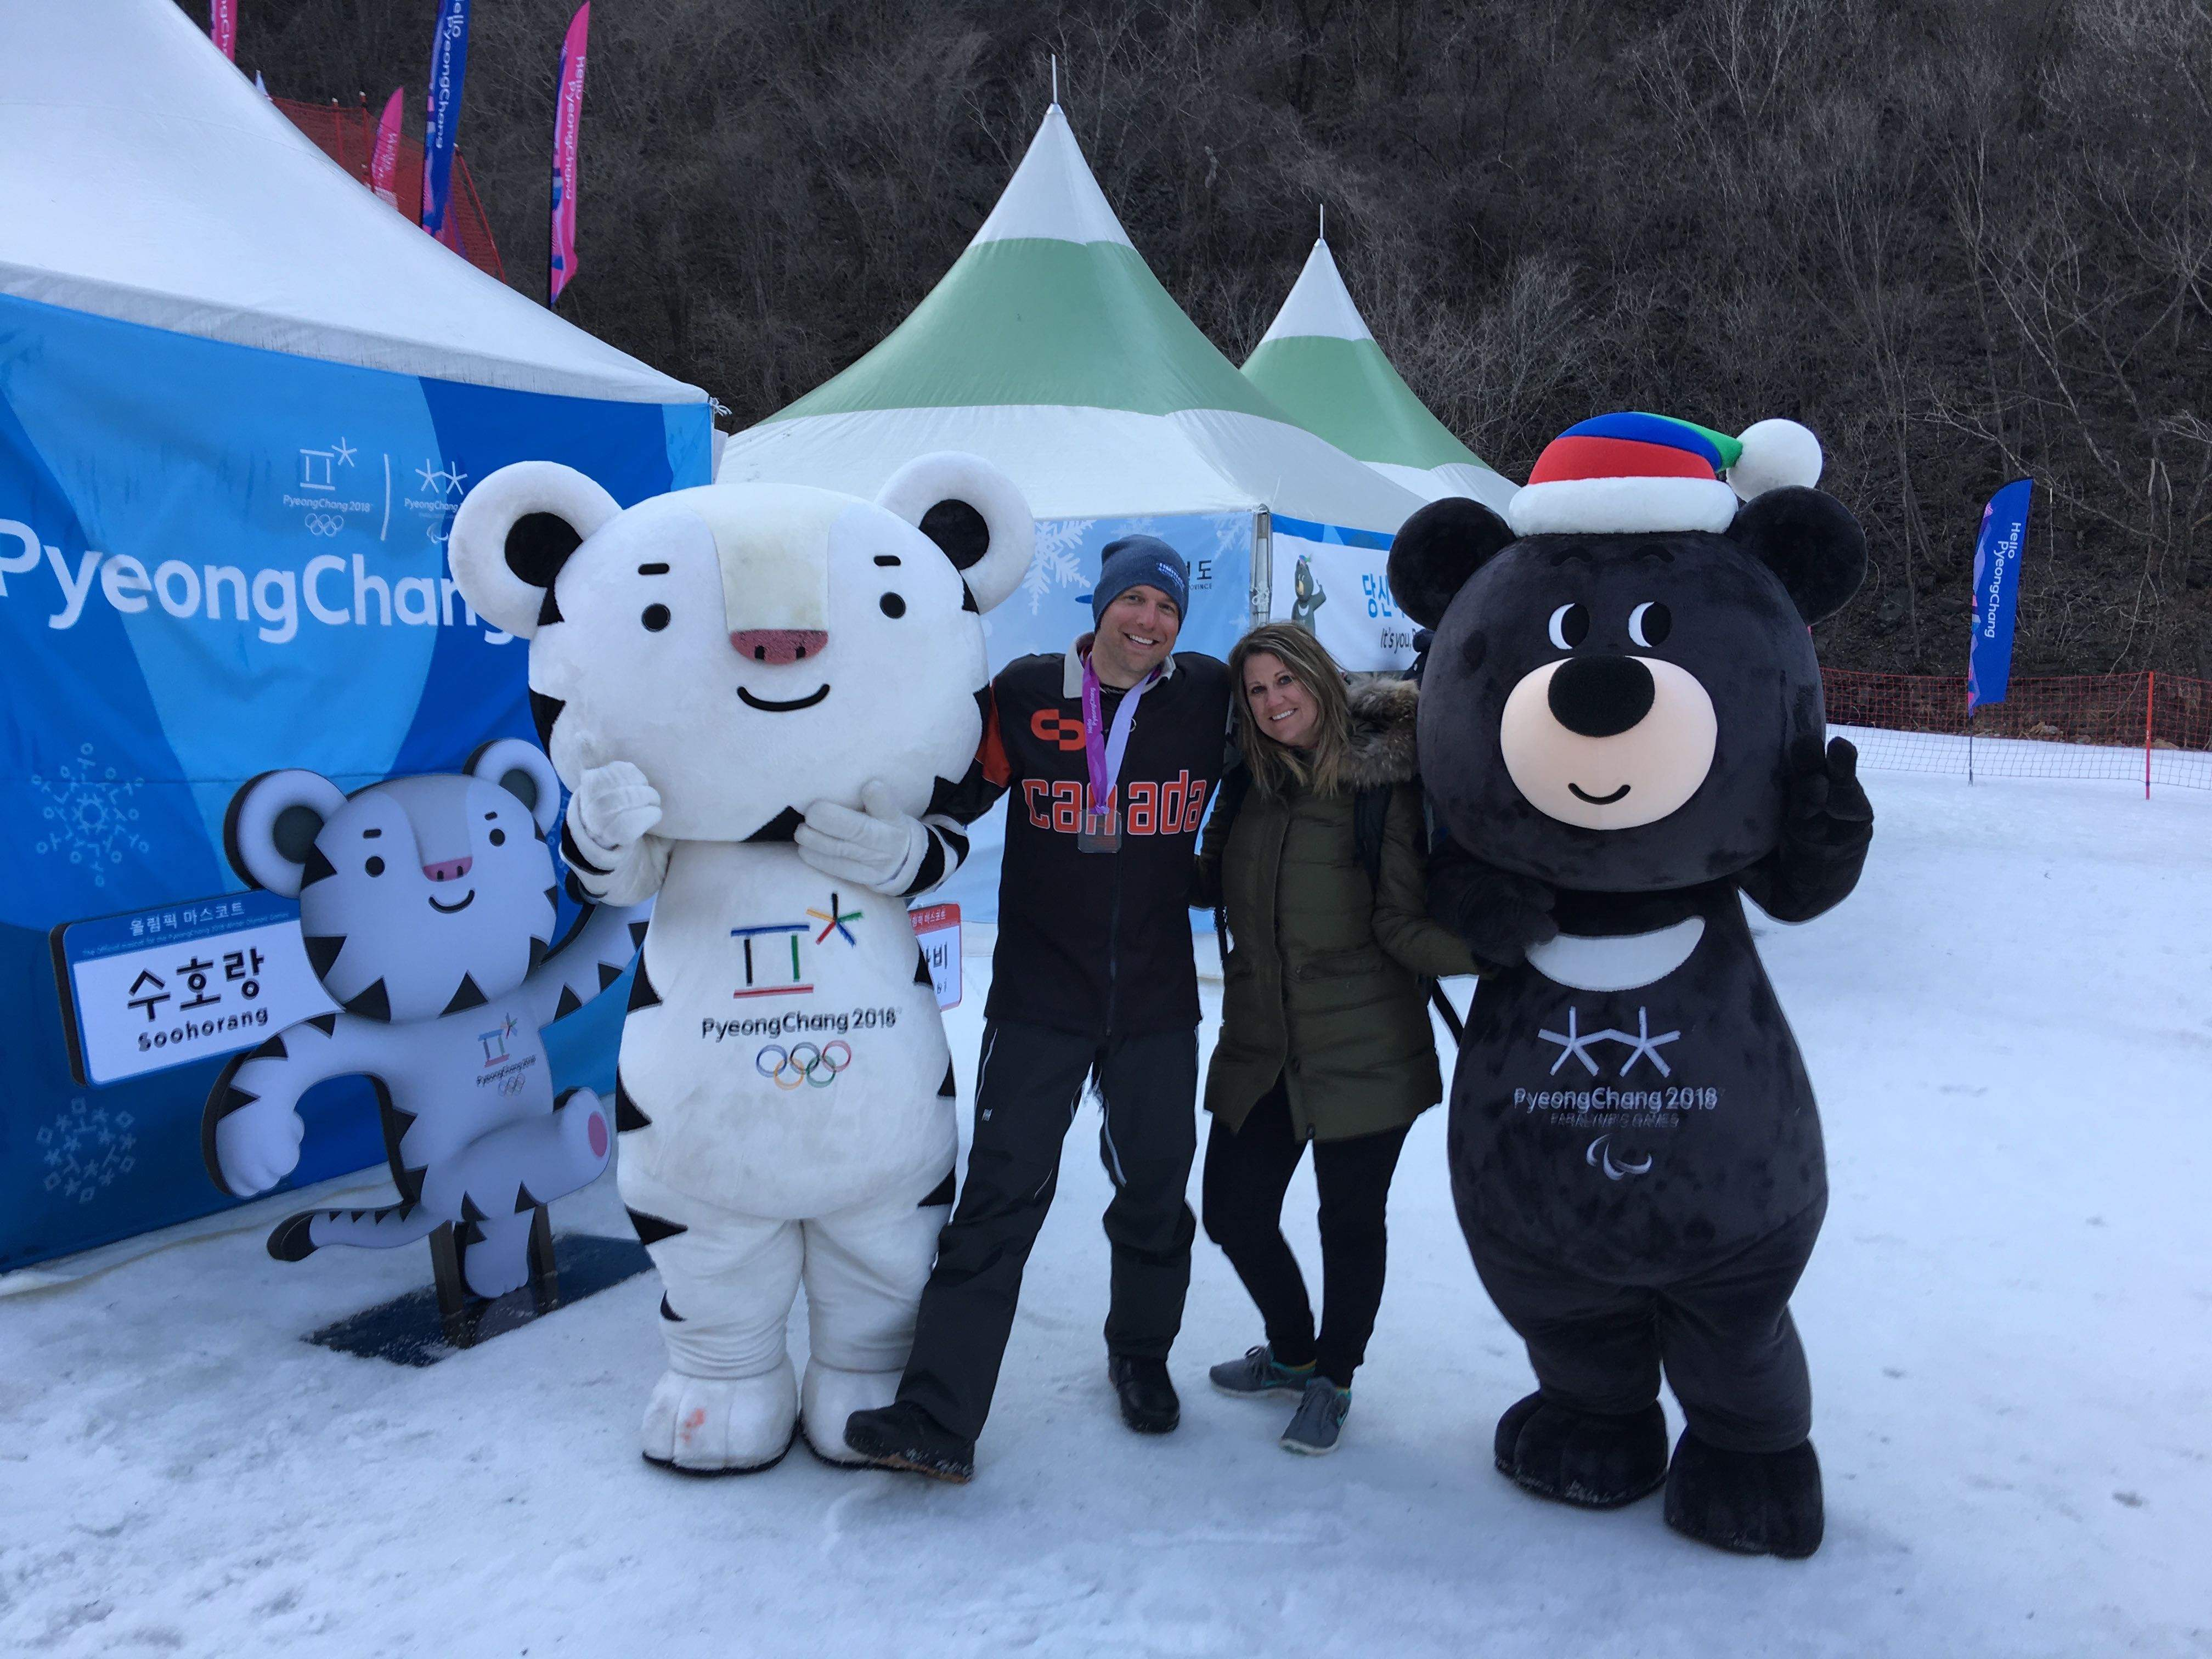 Celebrating his first World Cup medal, bronze, with his wife Heidi in Pyeongchang, 2017